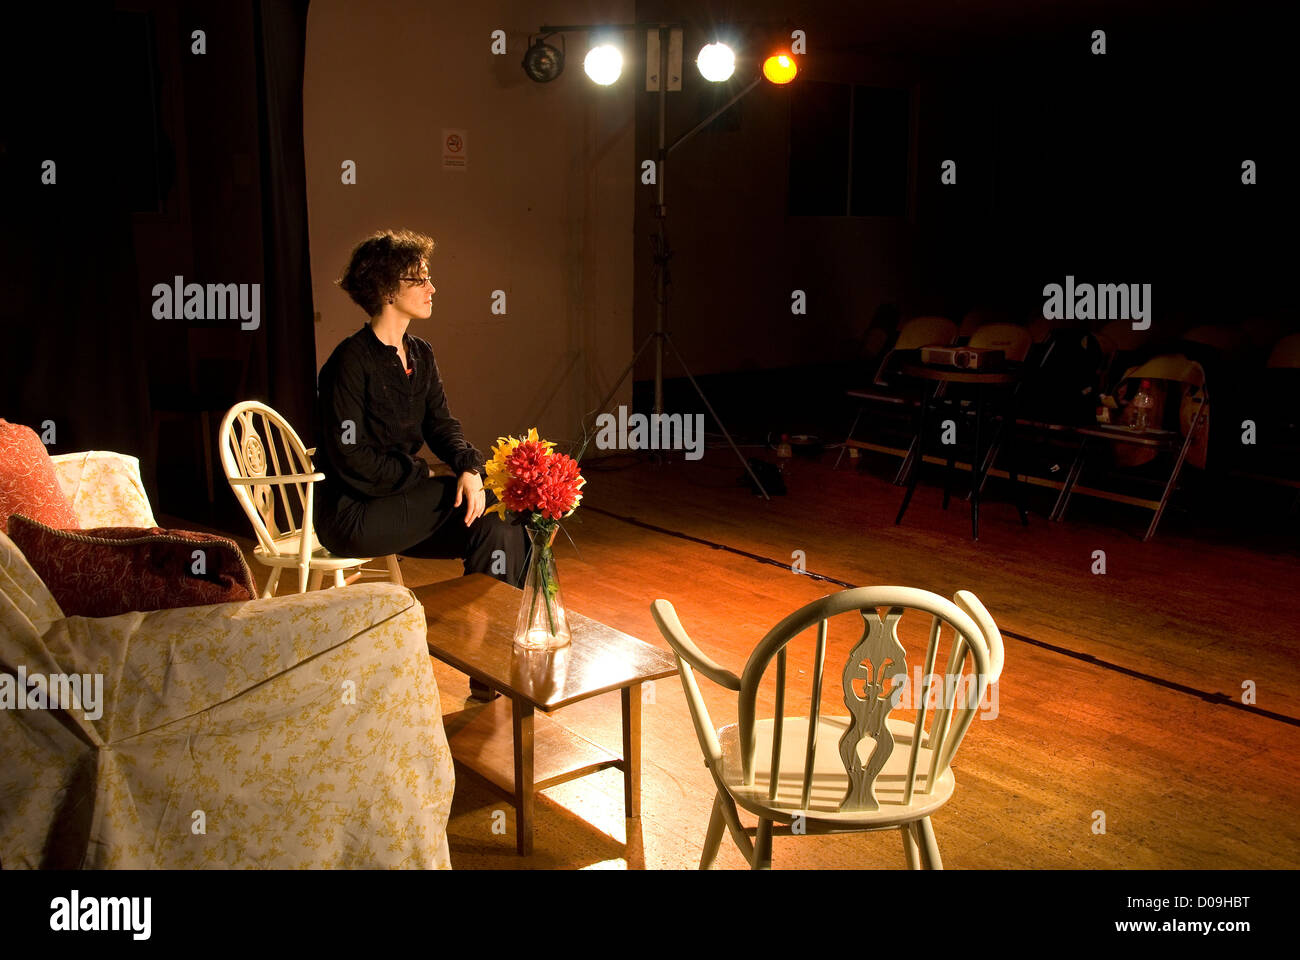 Woman on stage, theatre, England, UK - Stock Image